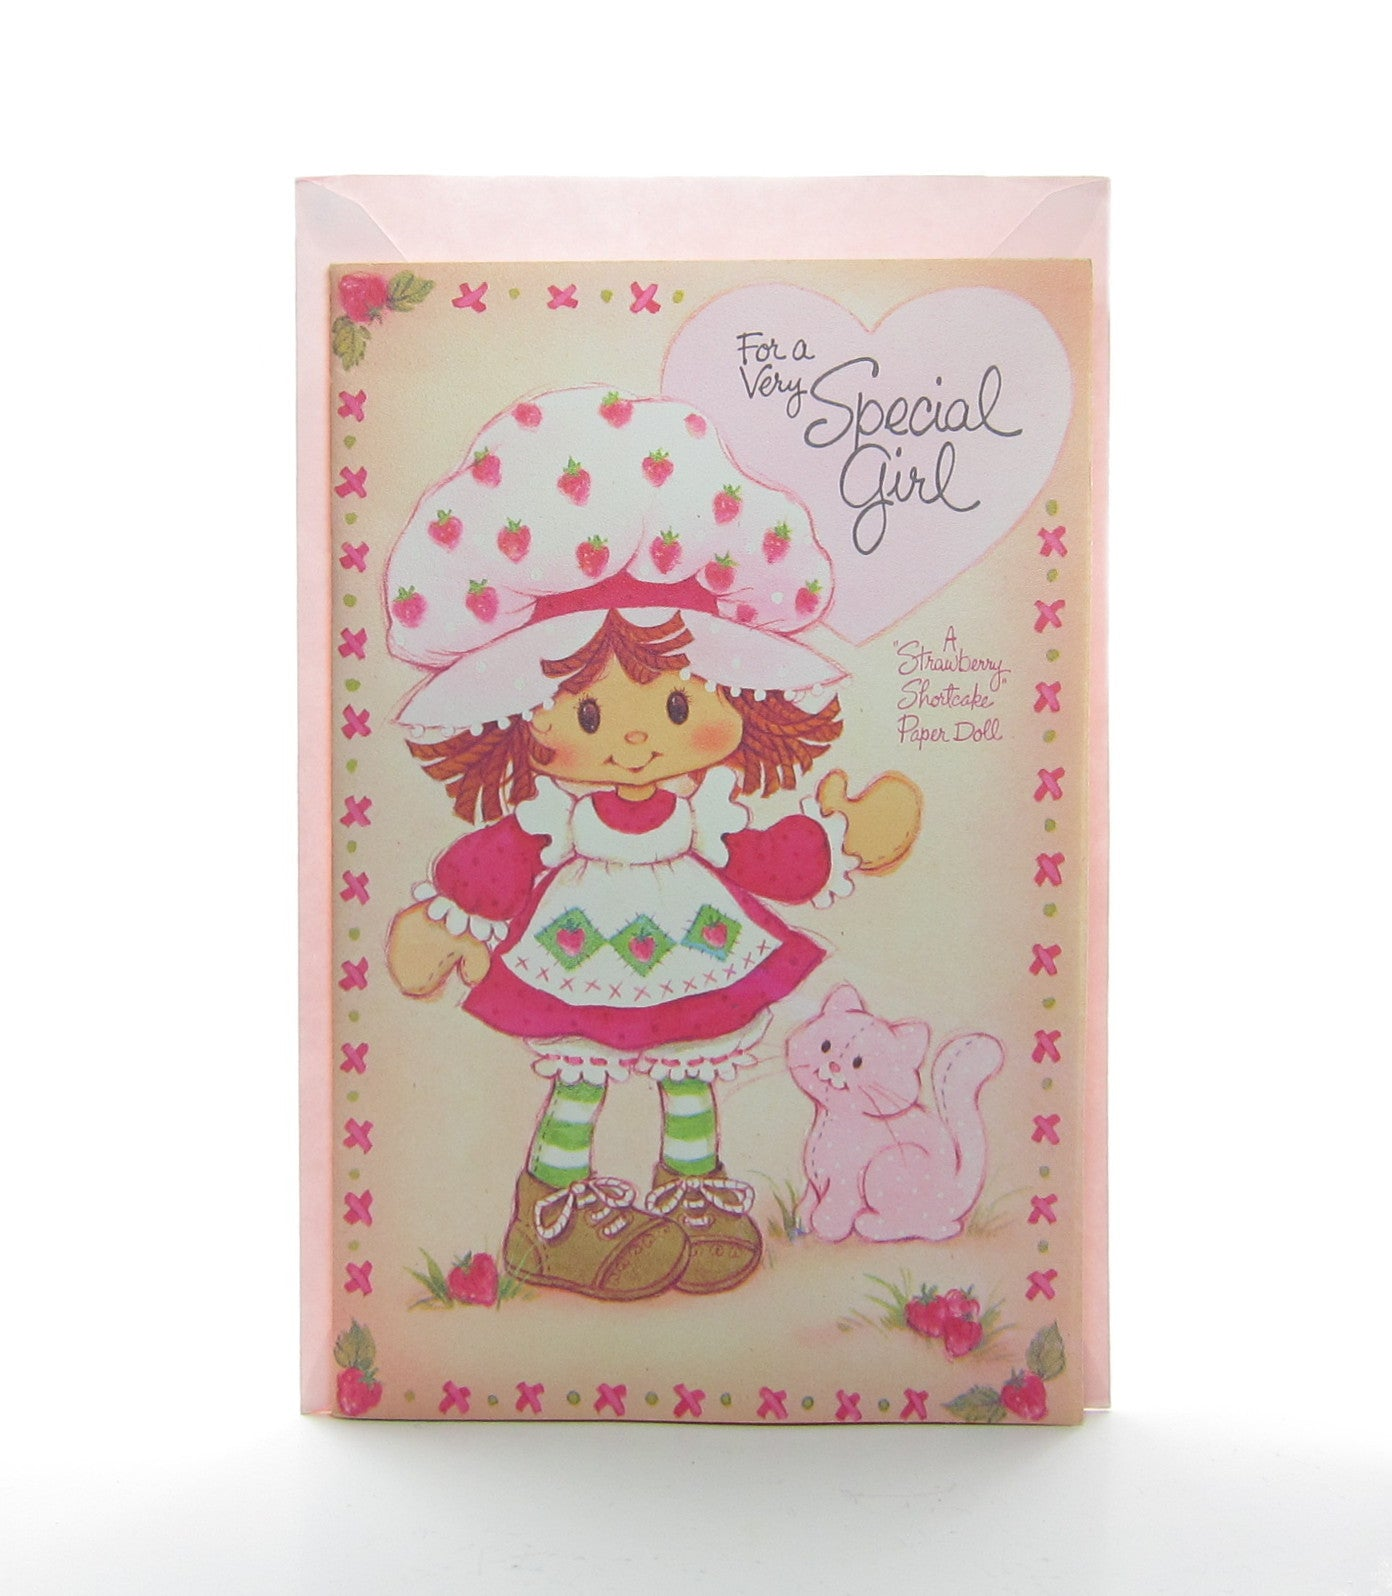 Strawberry Shortcake Valentine's Day paper doll card with envelope